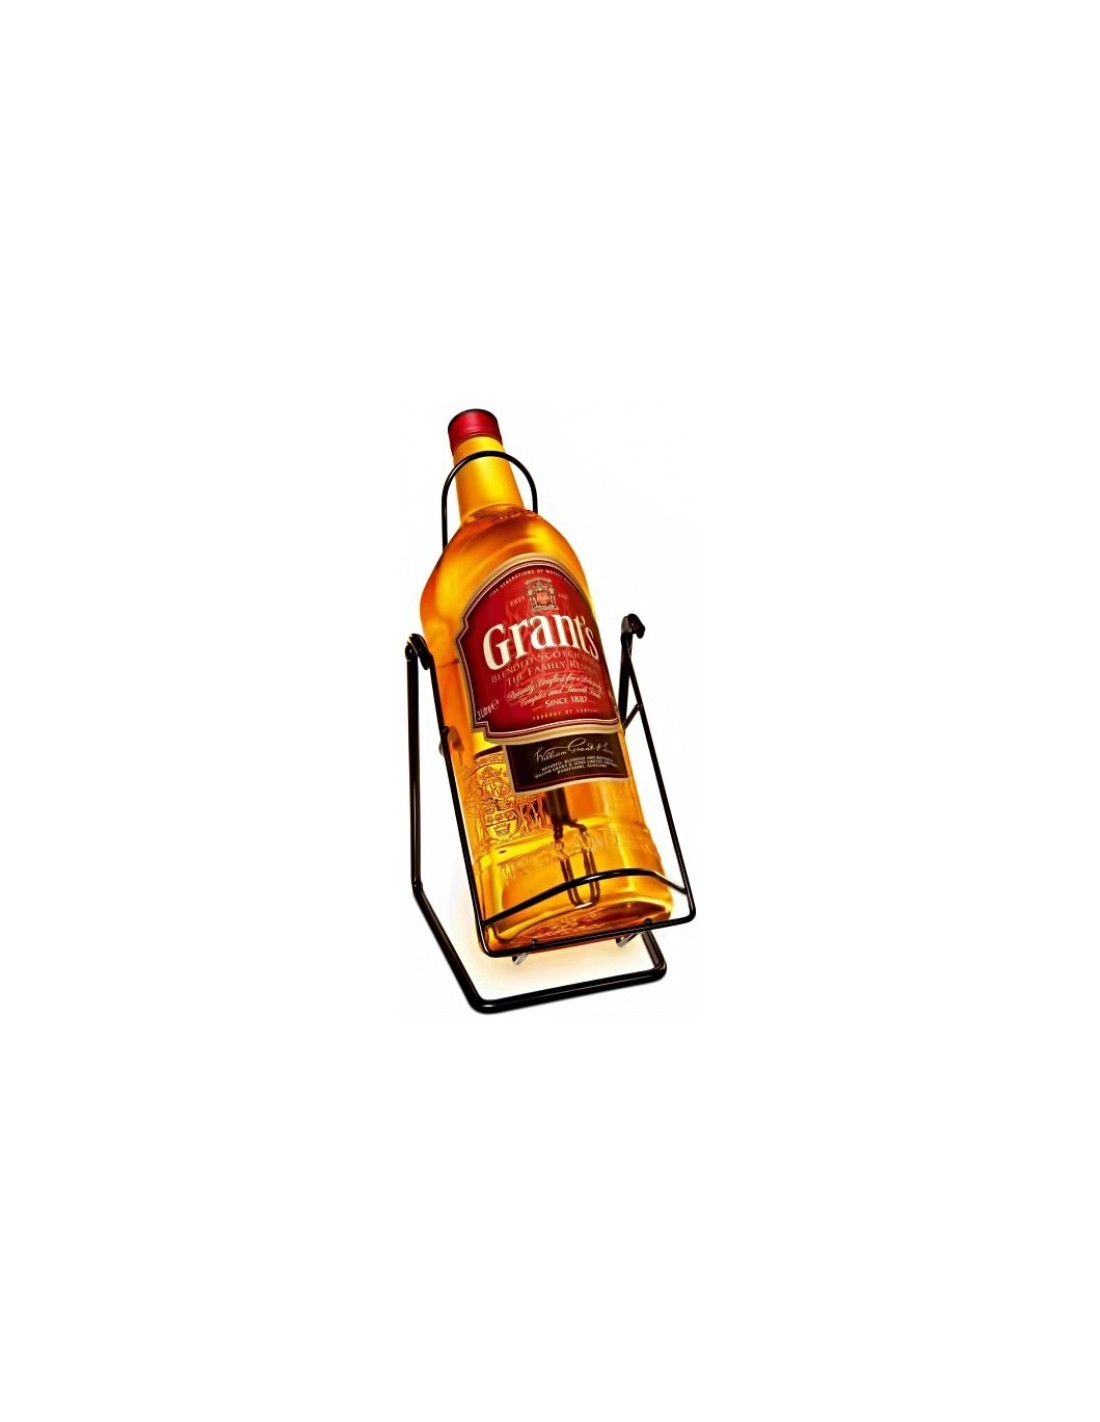 Blended Whisky Grant's, 40% alc., 3L, Scotia